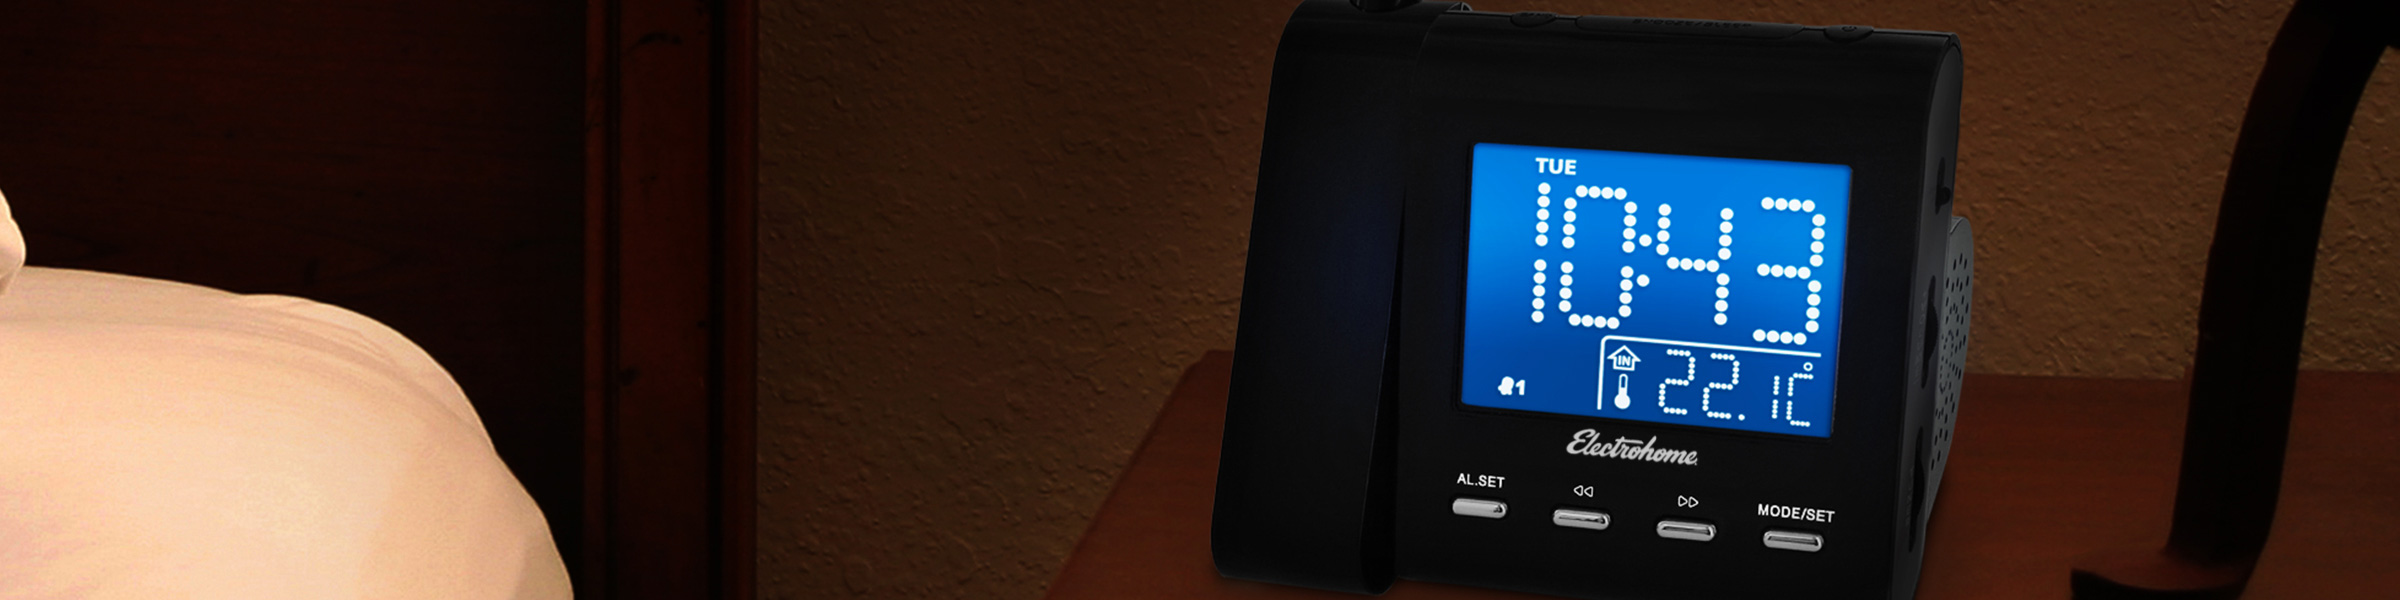 Digital Alarm Clock Radios